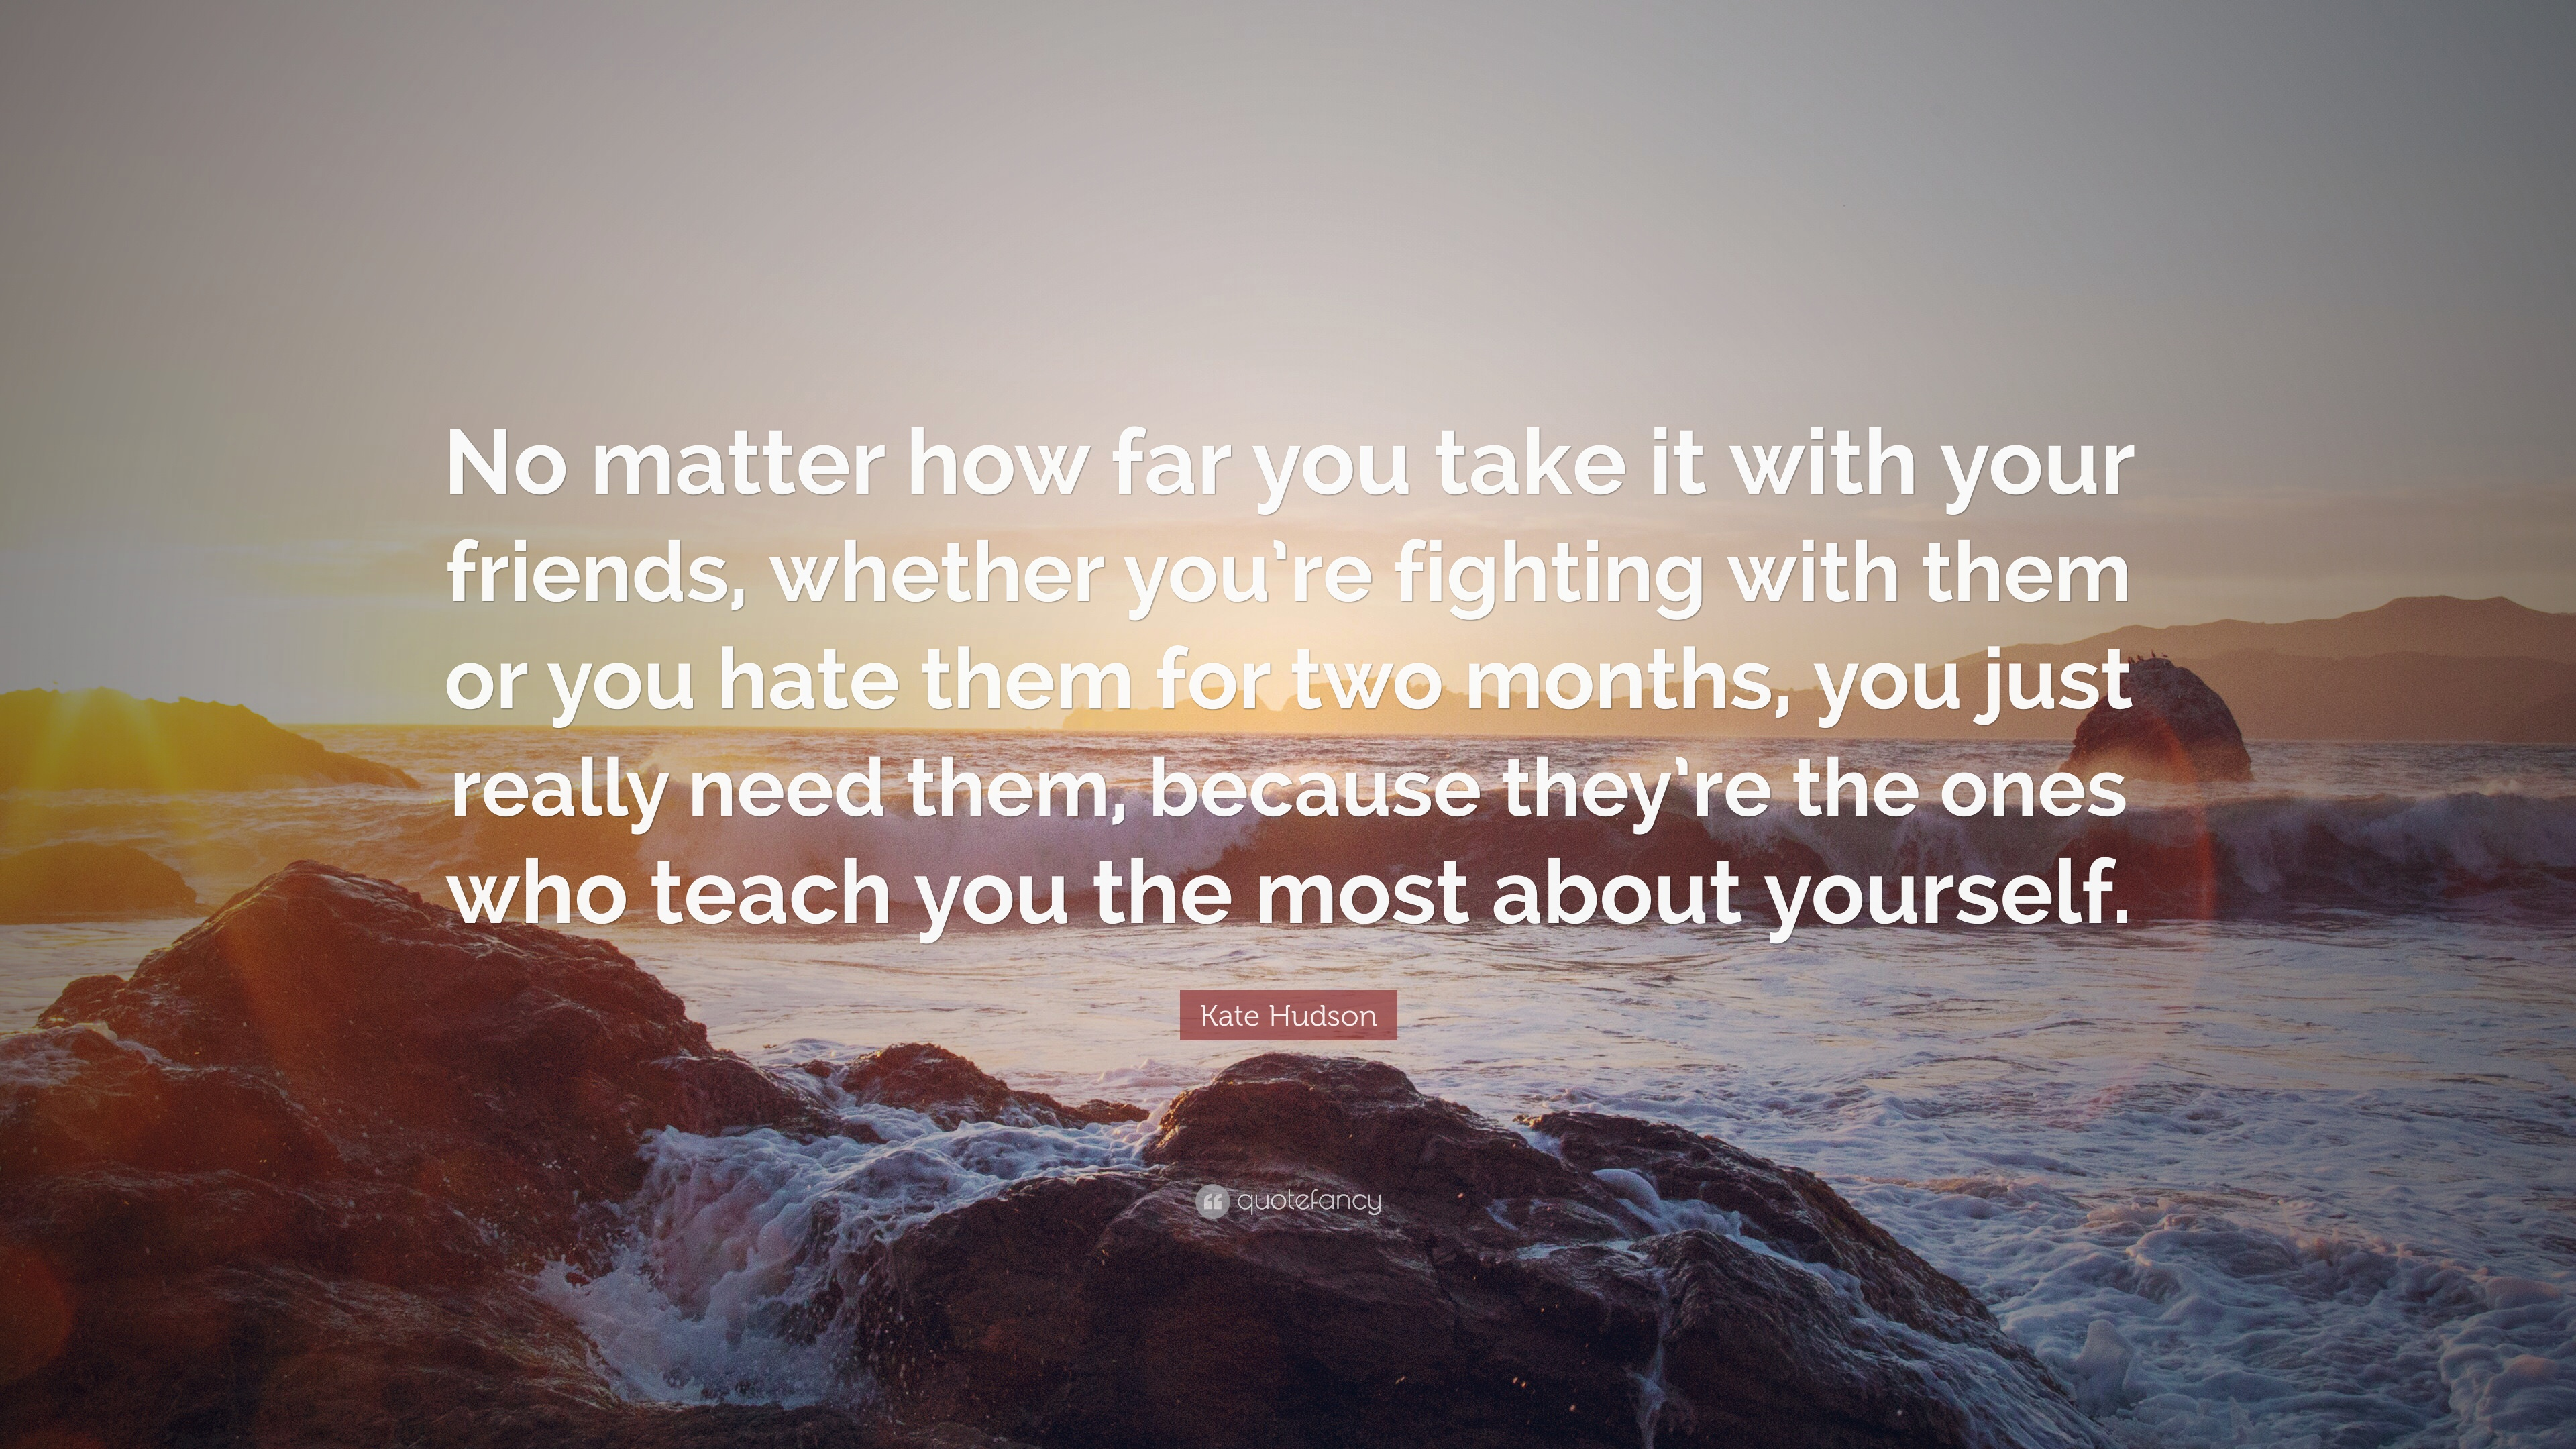 Kate Hudson Quote: No matter how far you take it with